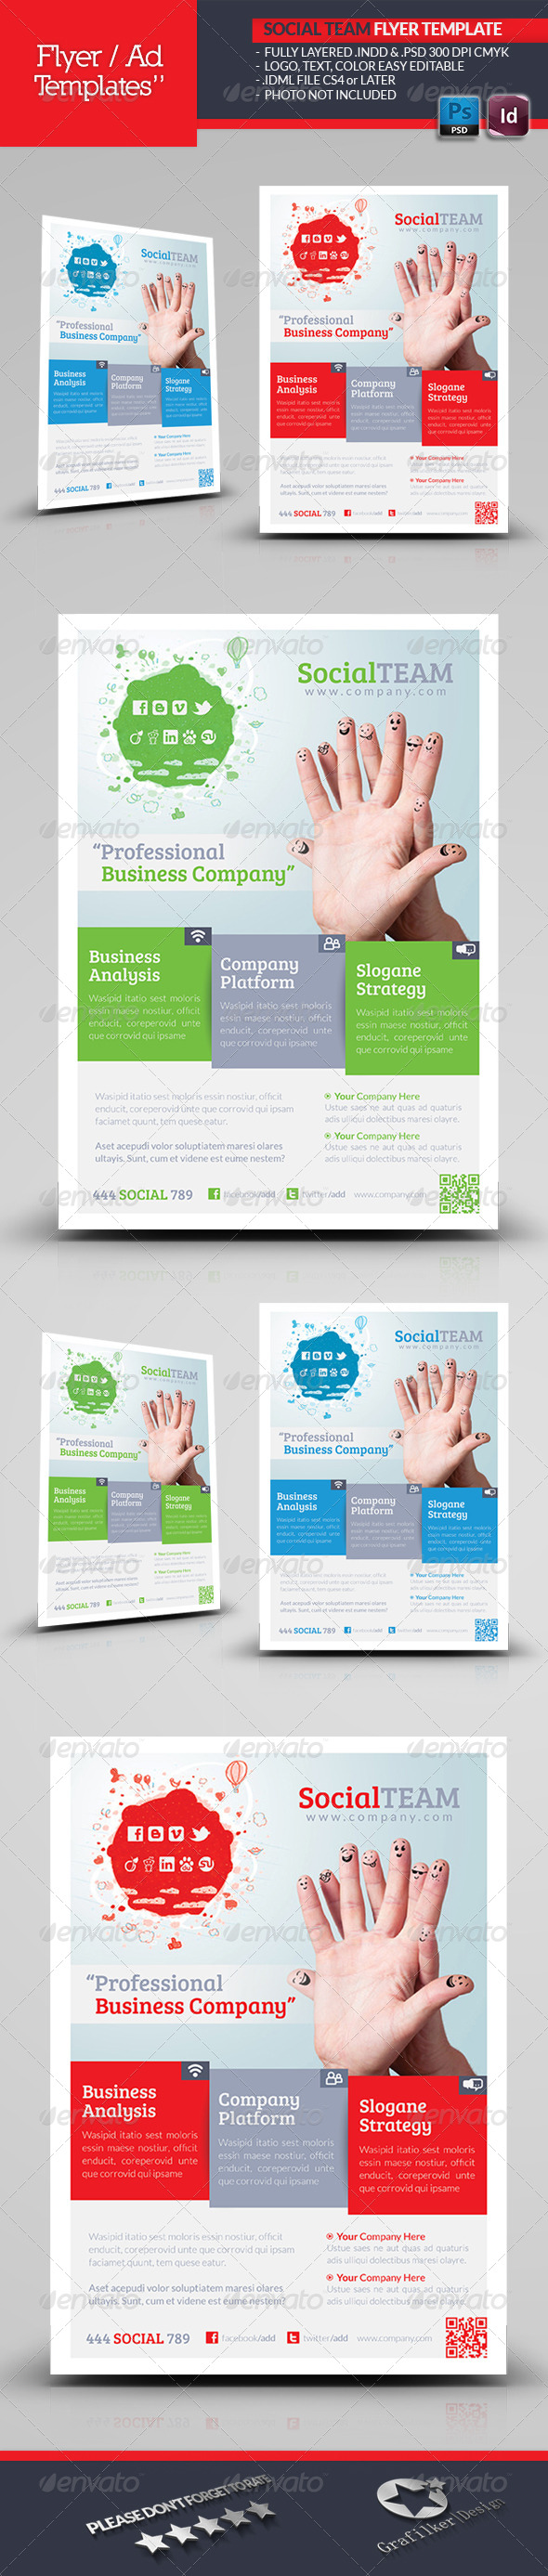 GraphicRiver Social Team Flyer Template 4904235